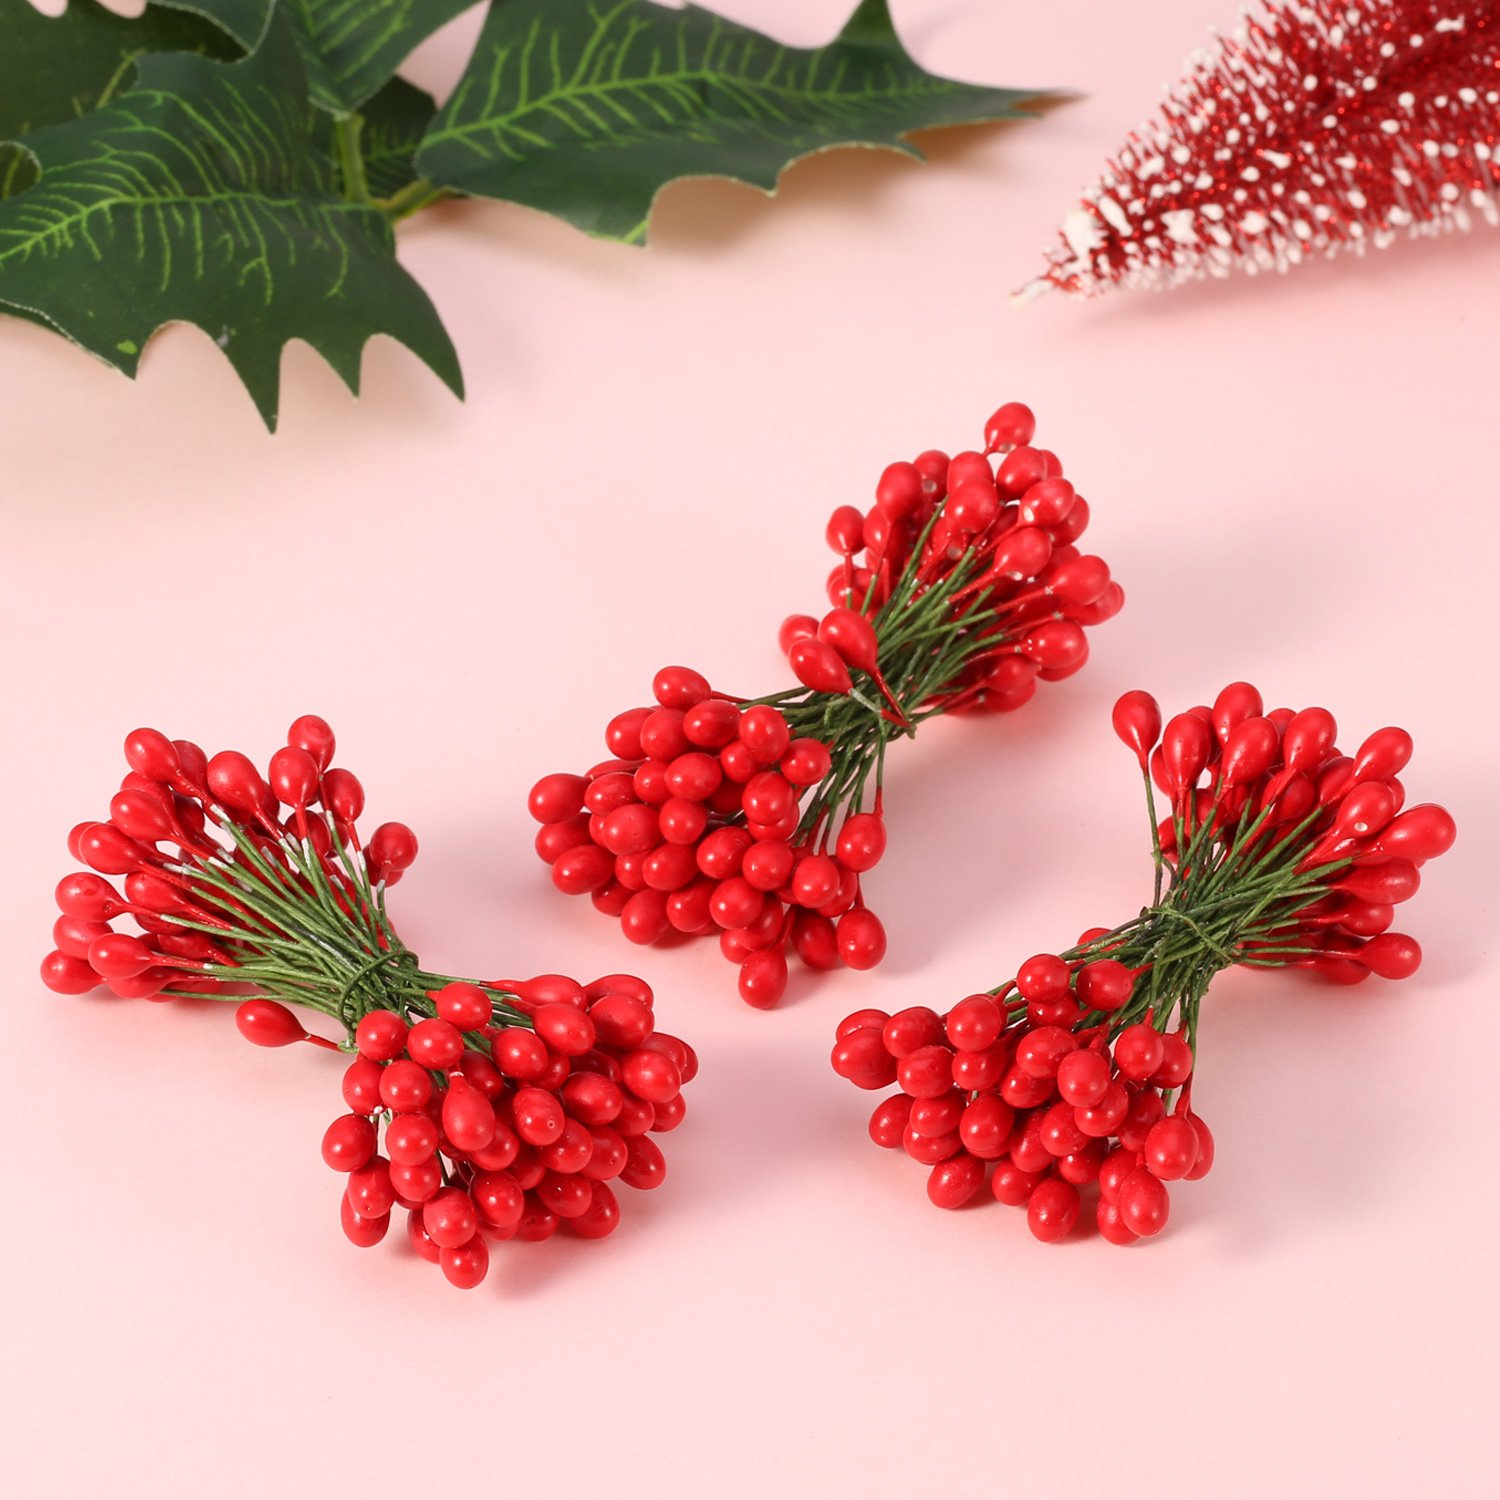 Amazon.com: BBTO 300 Pieces Artificial Holly Christmas Fake Berries ...